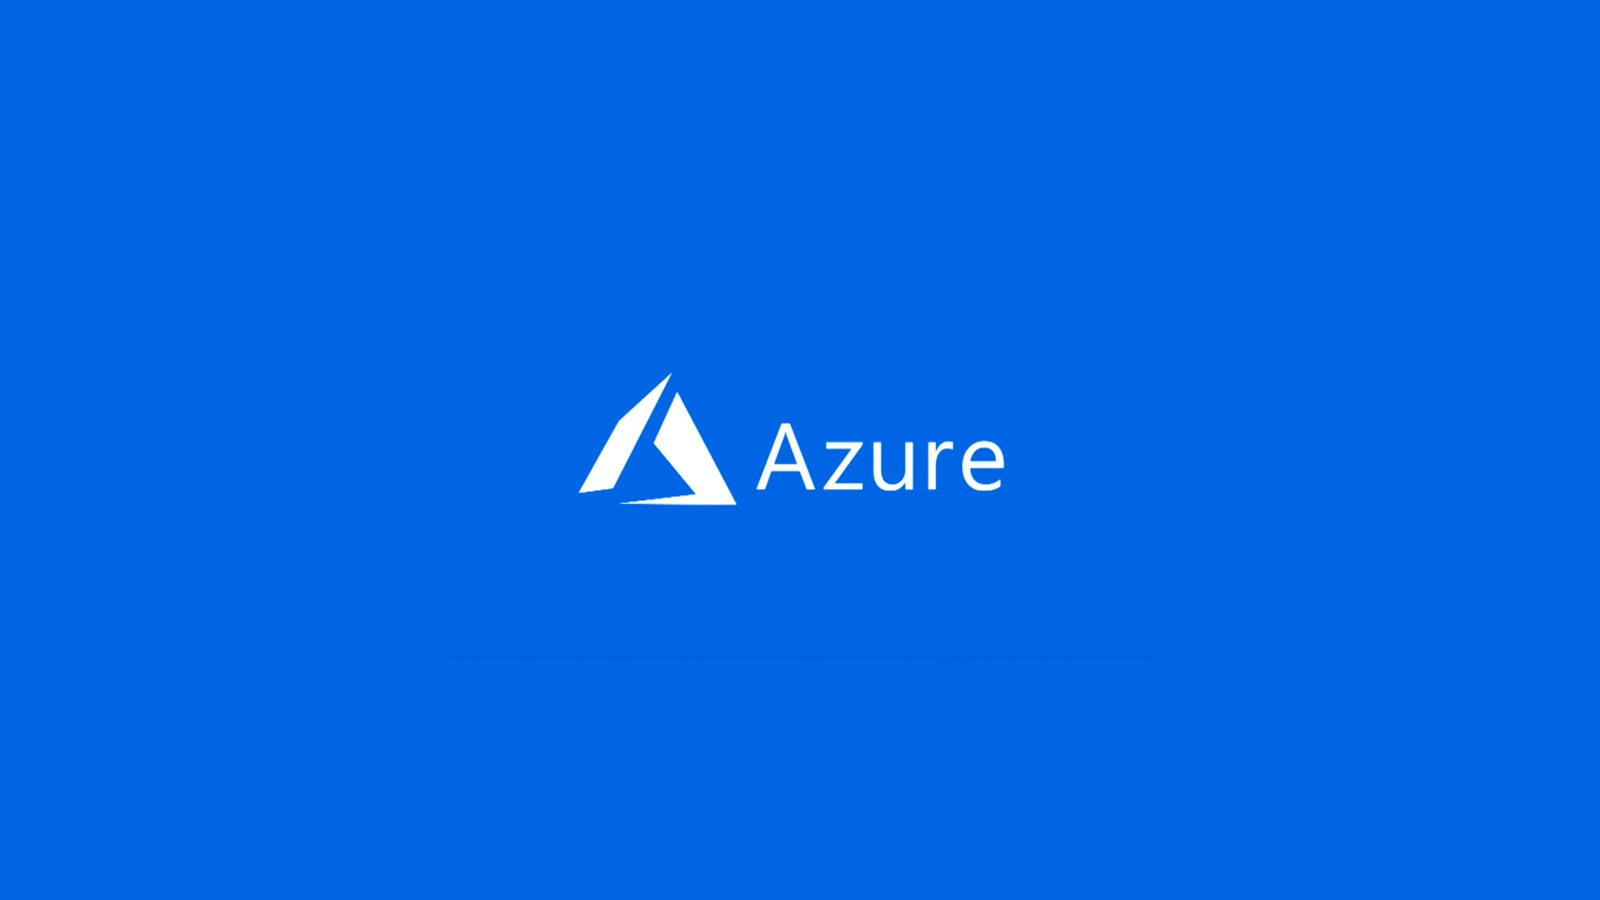 Dynamic Azure Credentials for Applications and CI/CD Pipelines Image